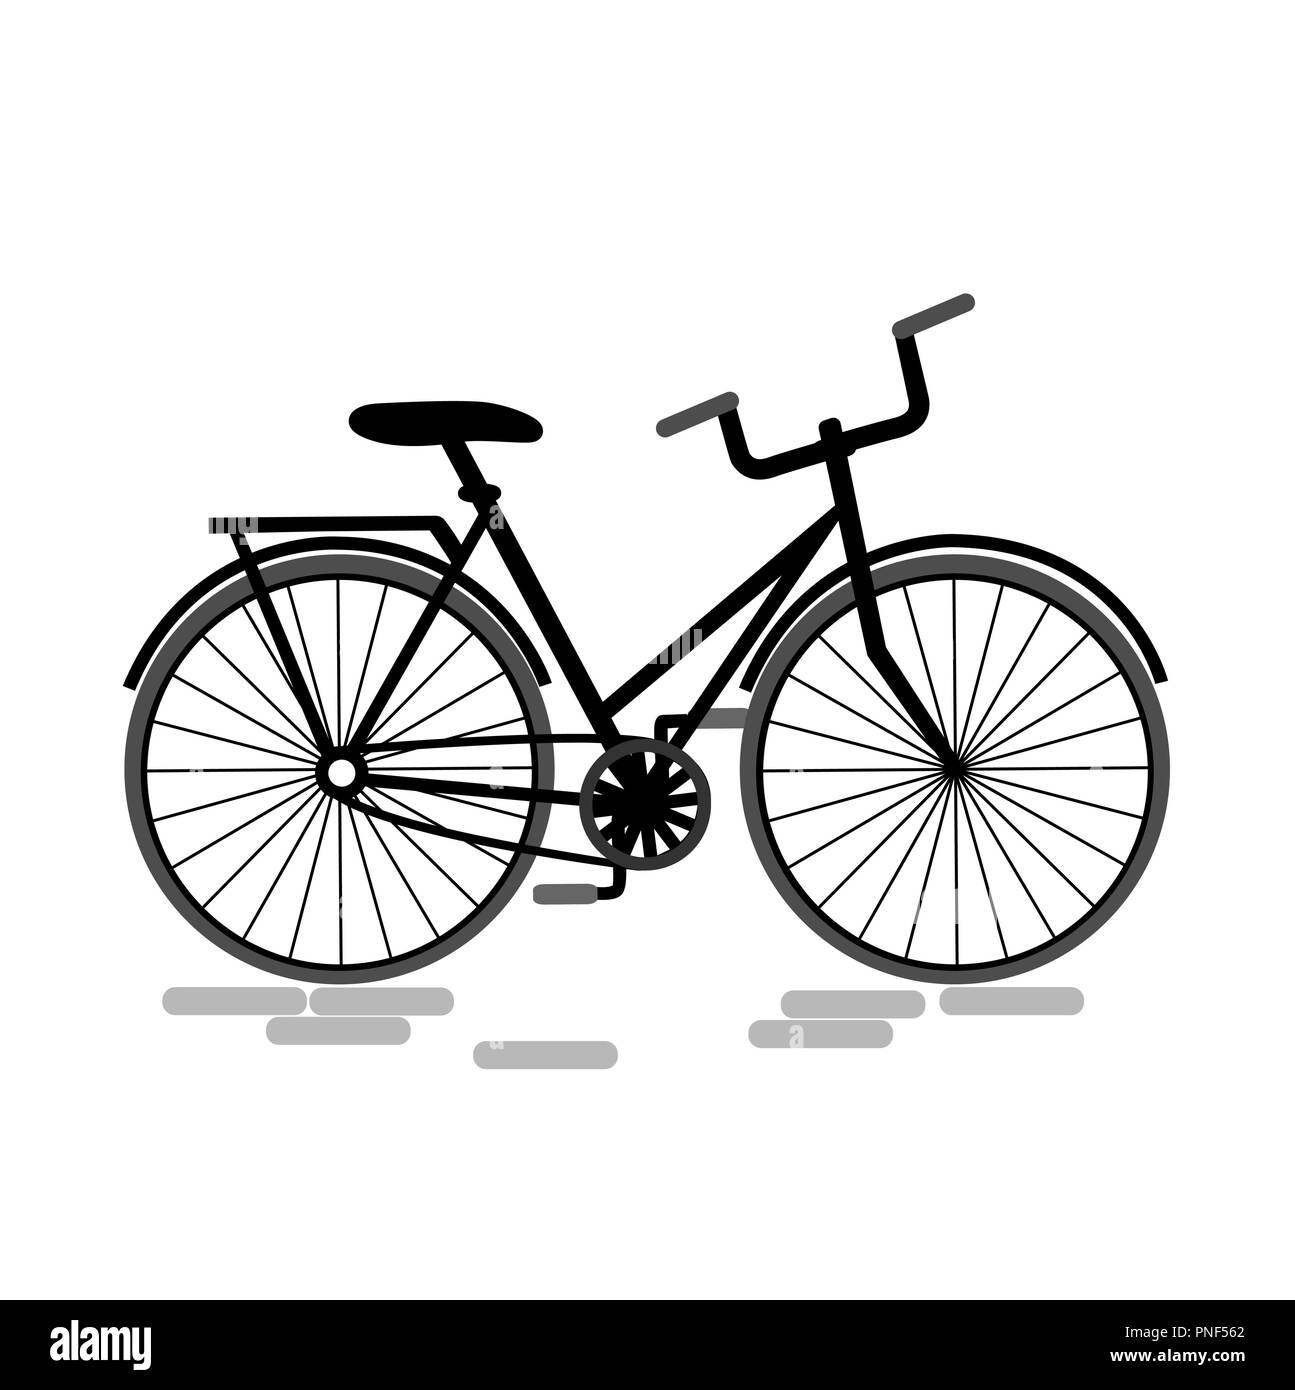 Bicycle illustration. Bike vector icon. Grey and blacvk palette - Stock Image